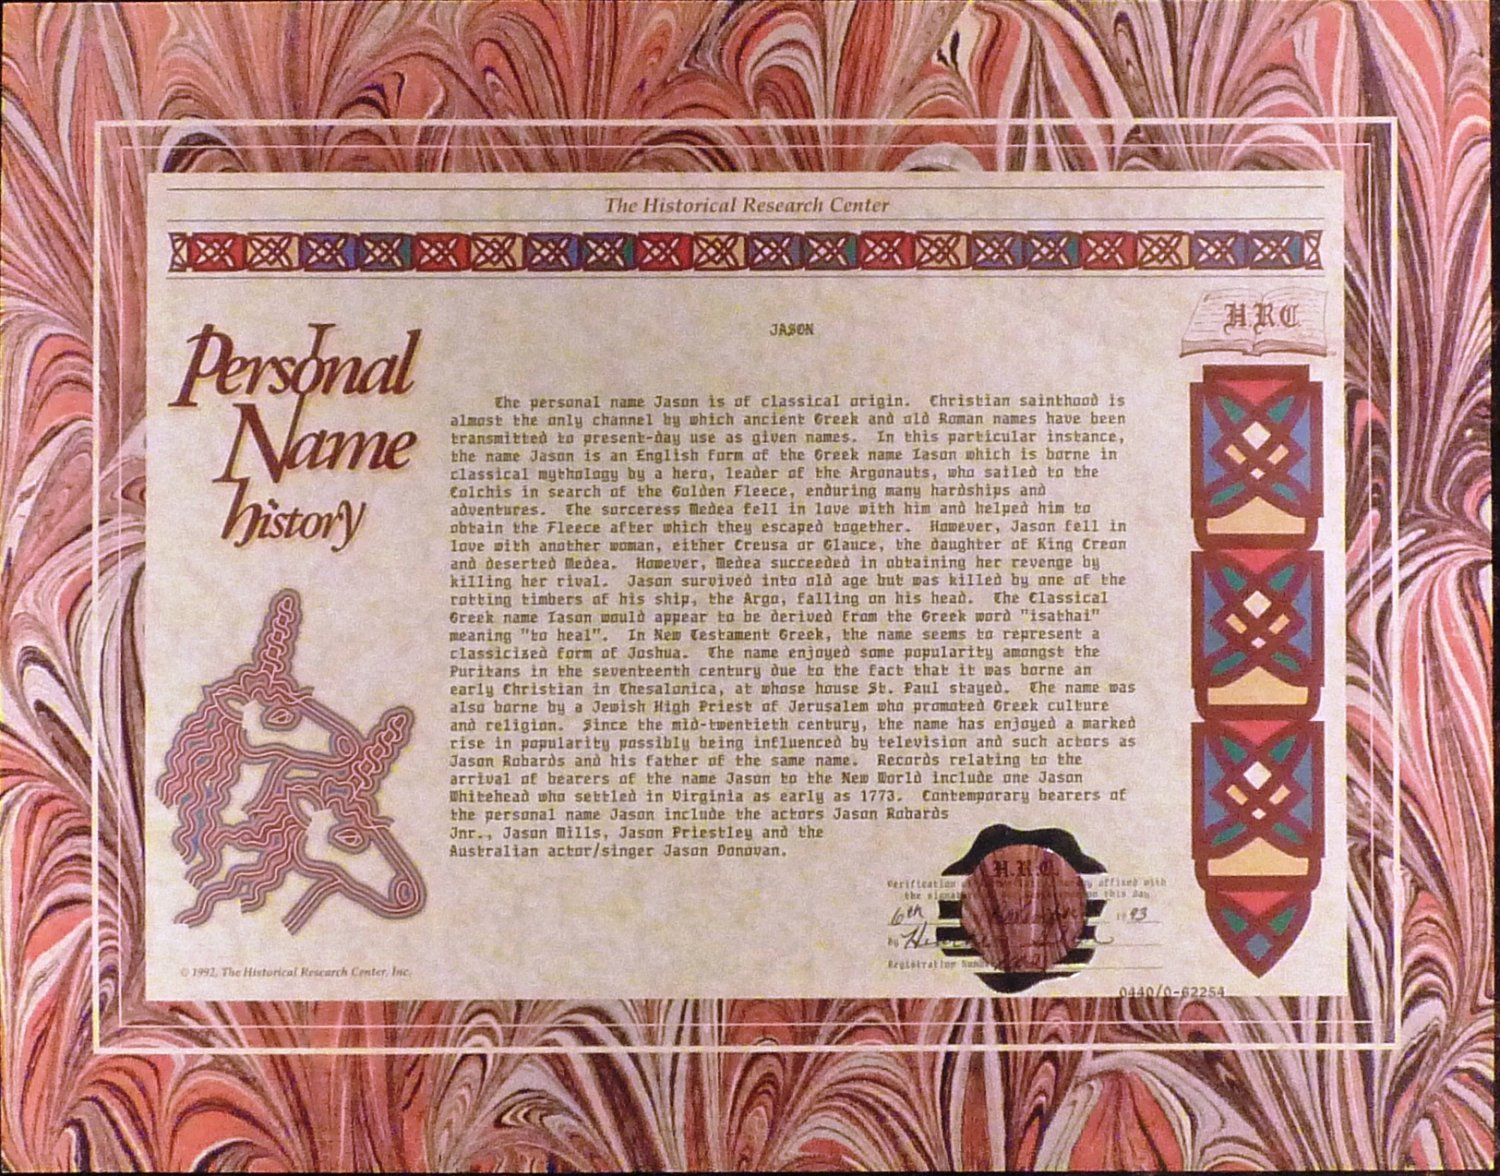 PAPER SCROLL CERTIFIED HISTORICAL RESEARCH PERSONAL NAME HISTORY 'JASON'